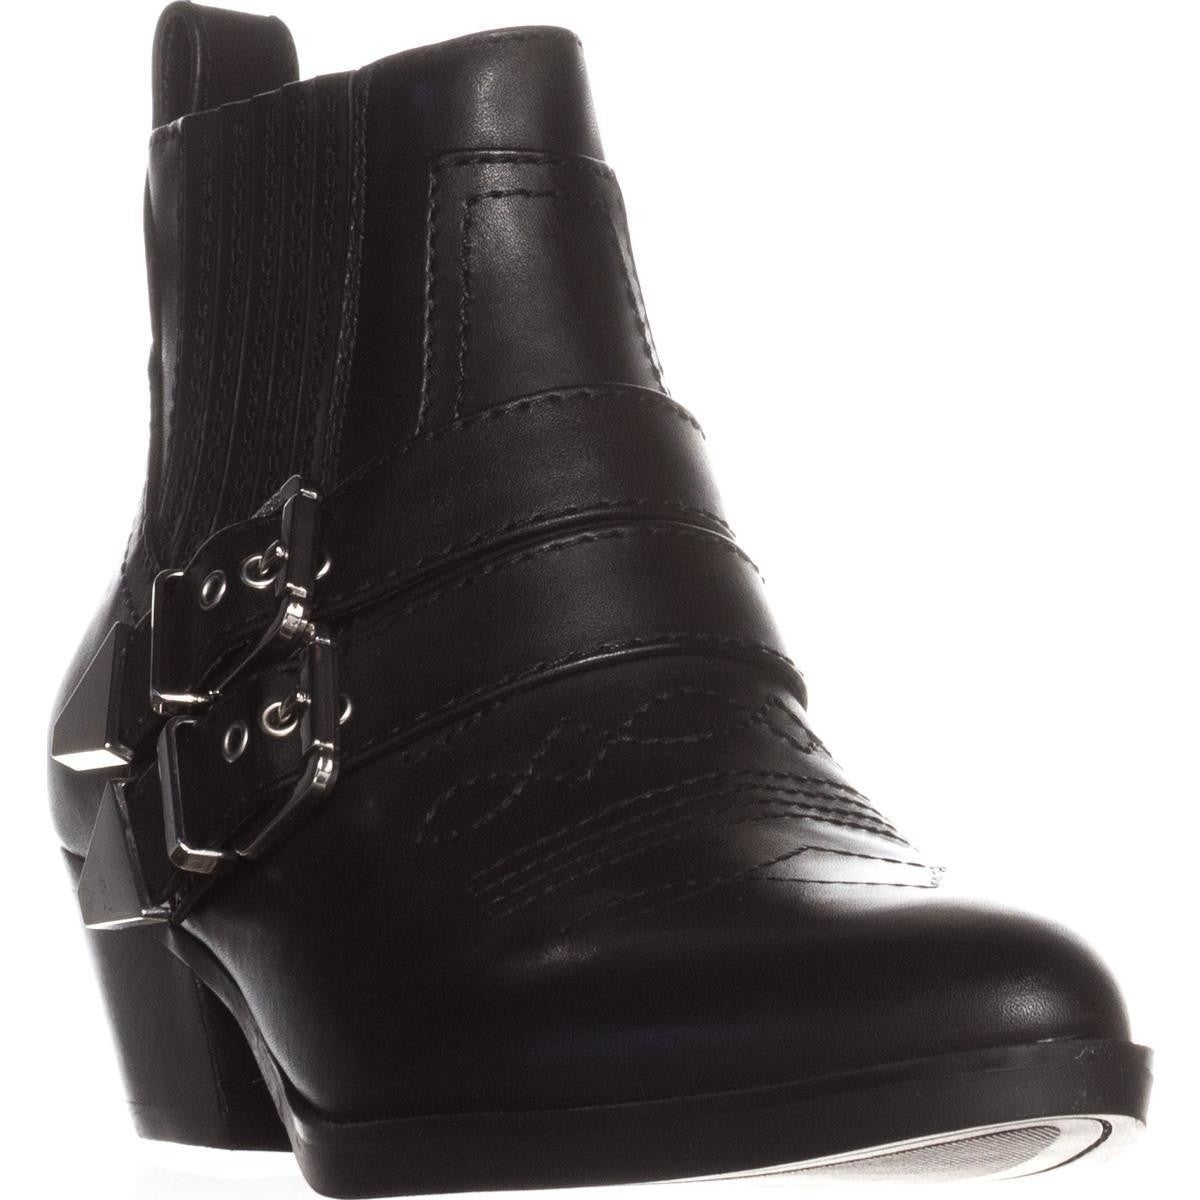 d6a6ad01de6 GUESS Womens Violla Pointed Toe Ankle Cowboy Boots